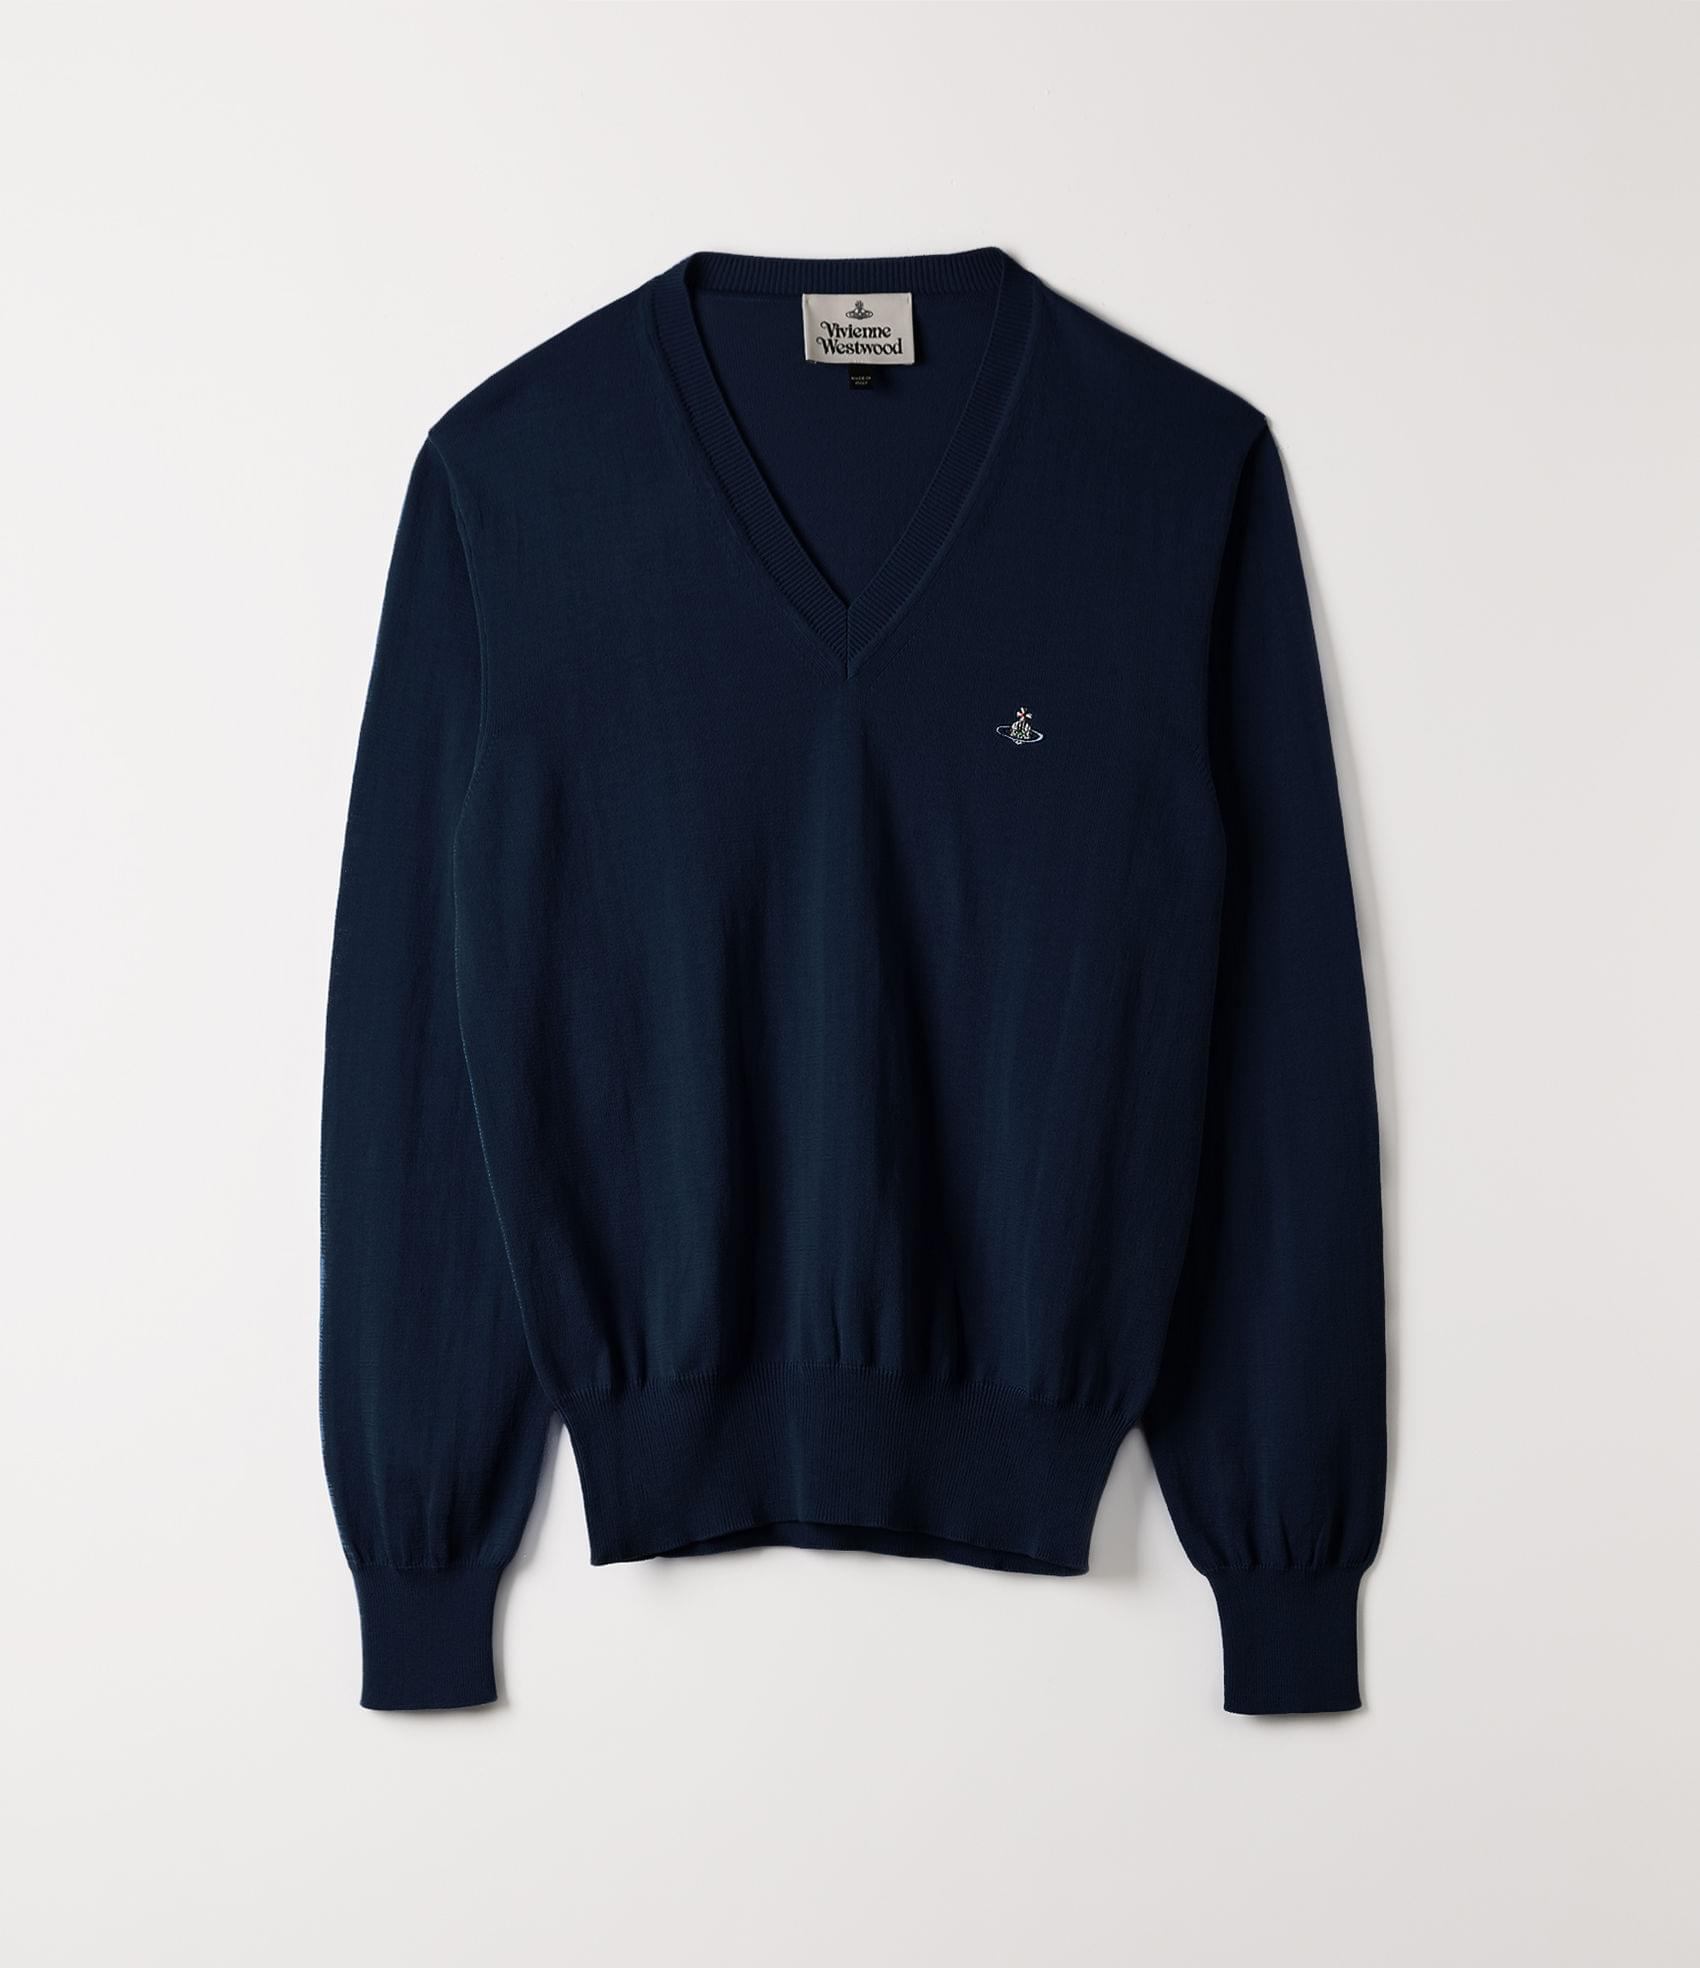 Vivienne Westwood V-NECK KNIT BLUE NAVY